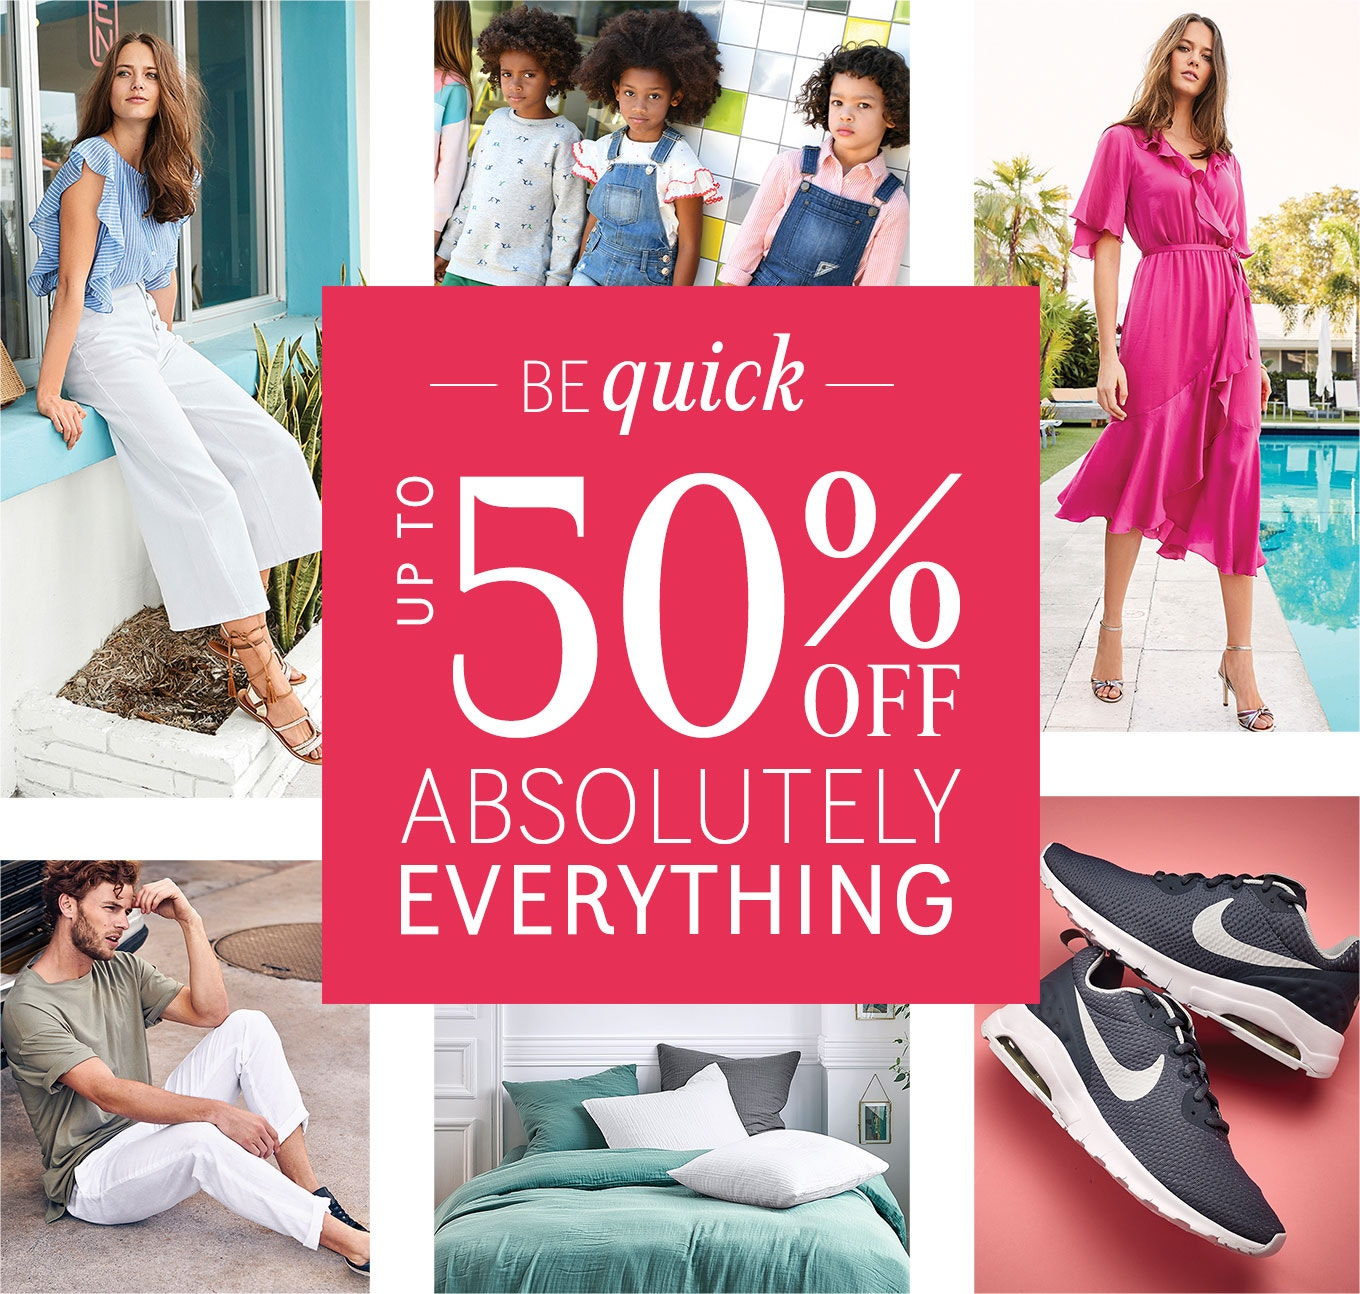 Best Sale Ever - Up to 50% Off Everything